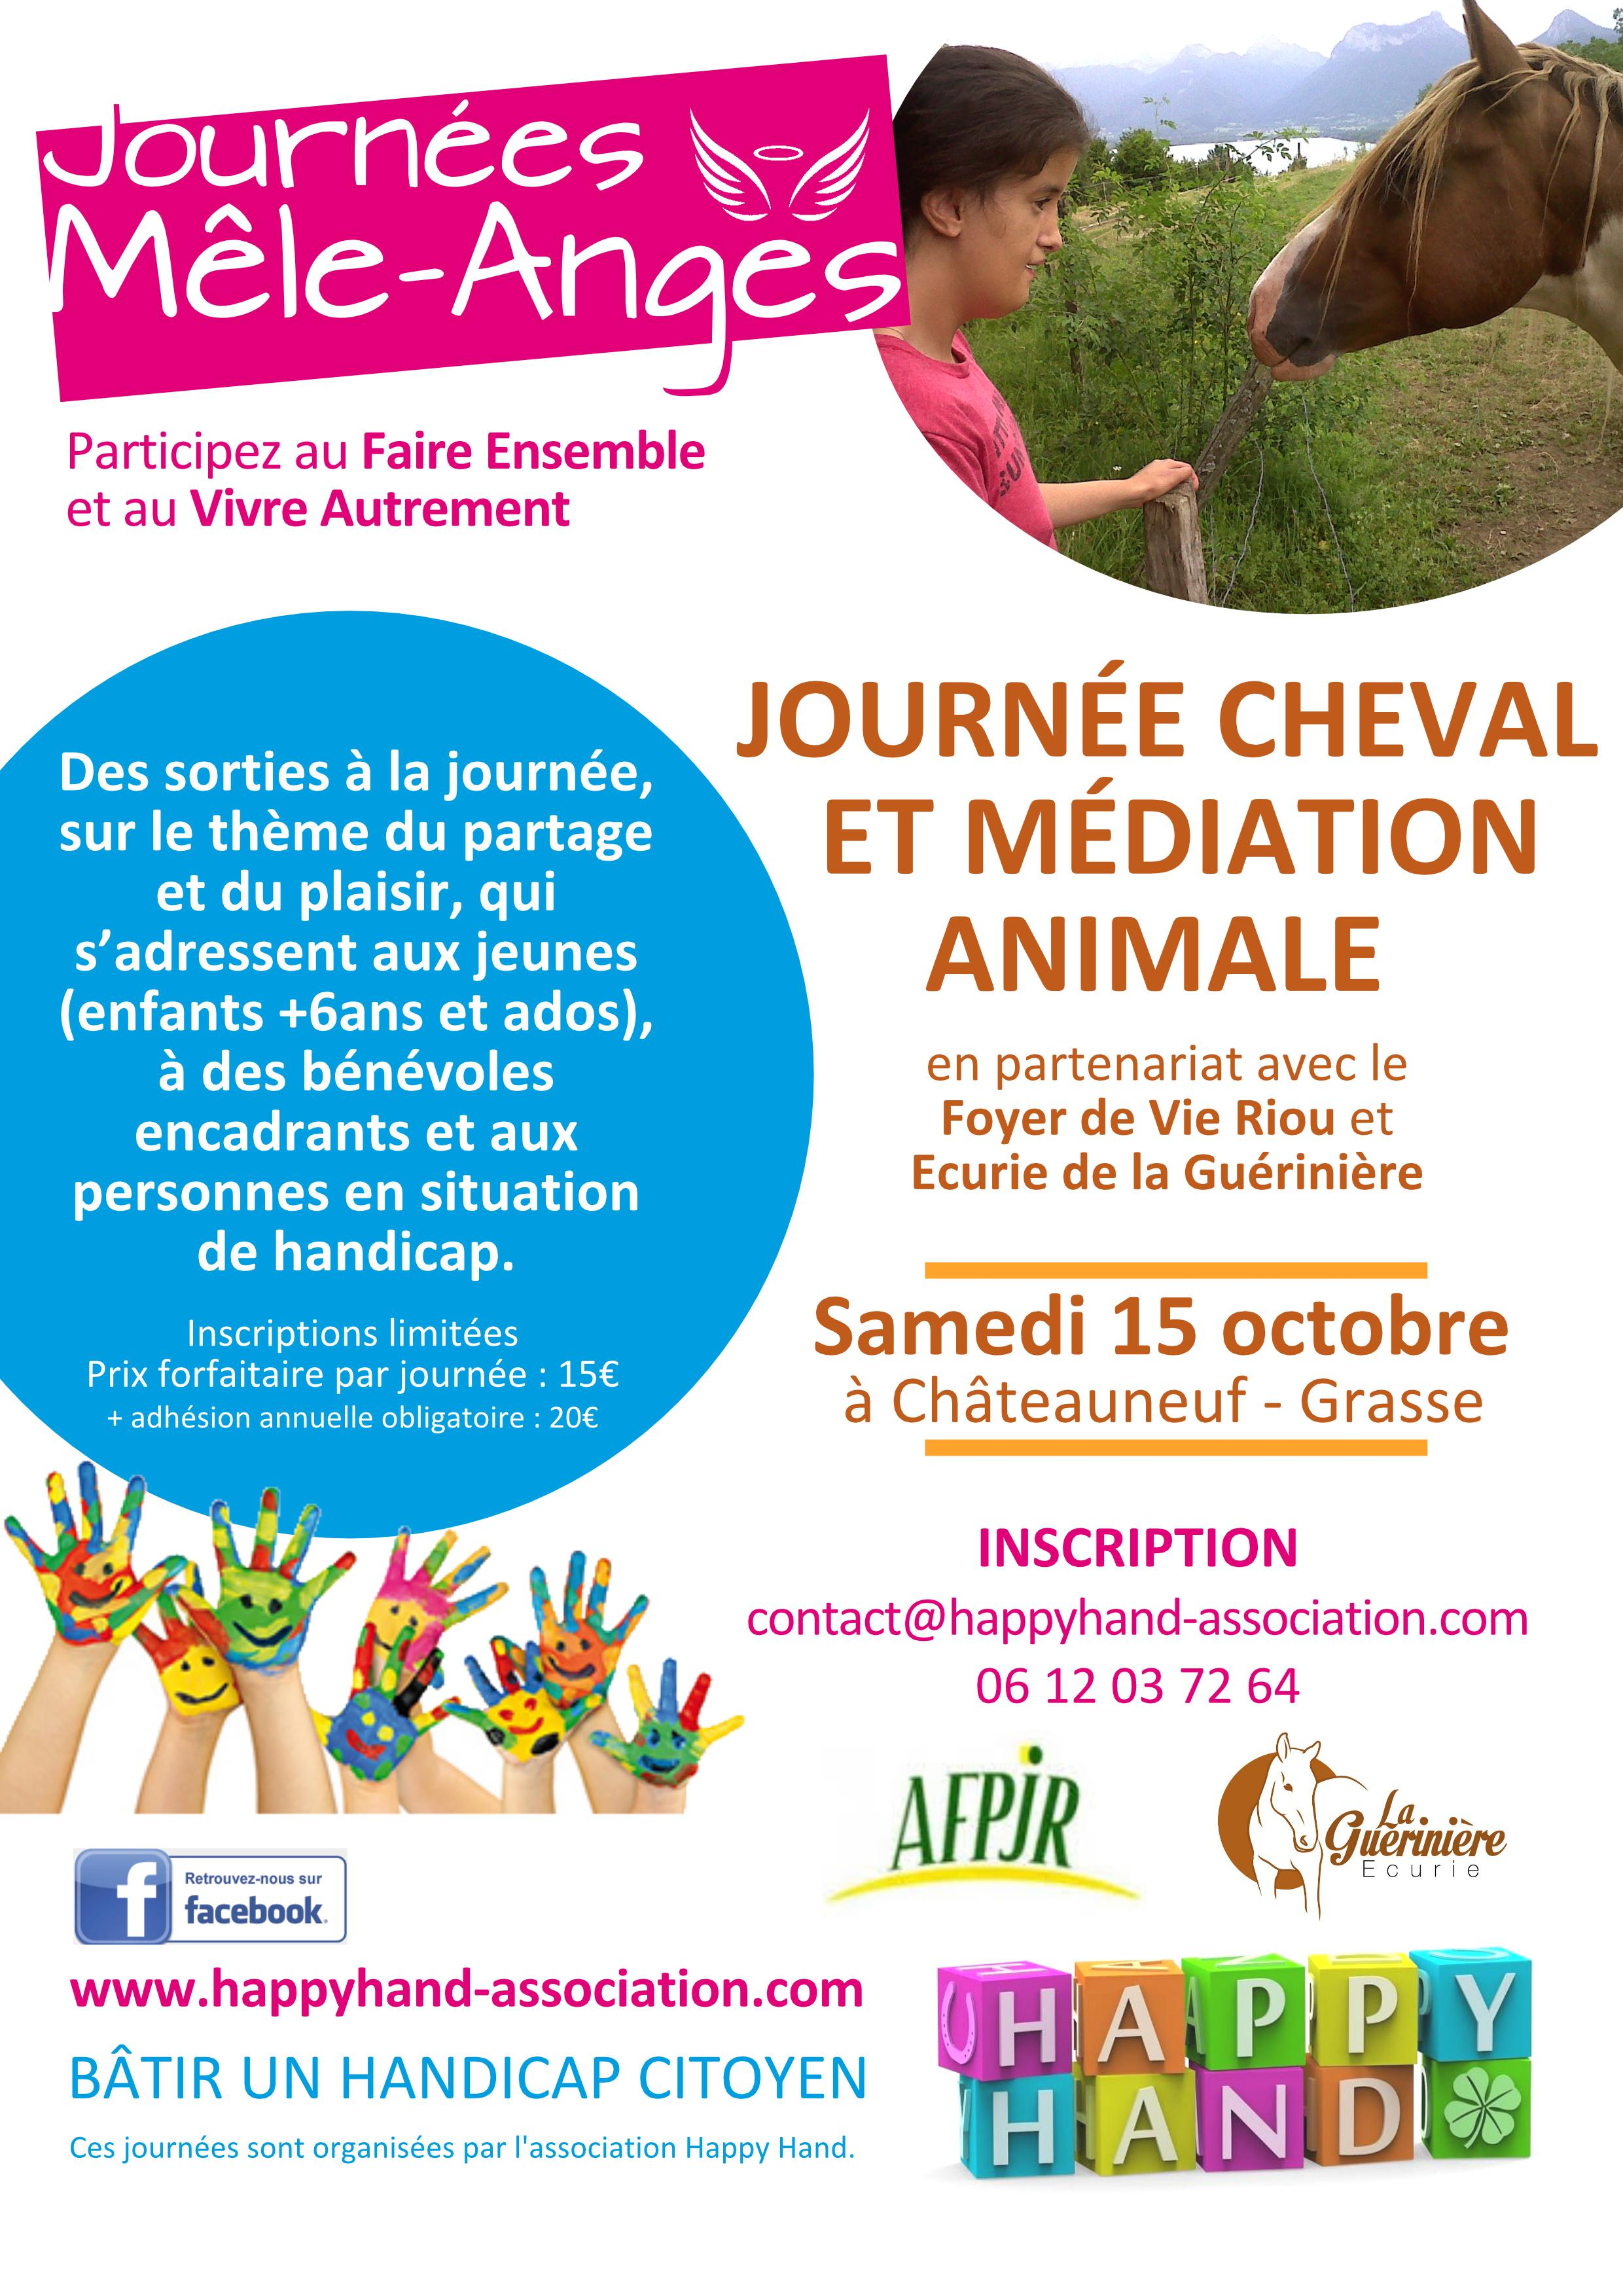 journee-mele-anges-cheval-octobre-2016